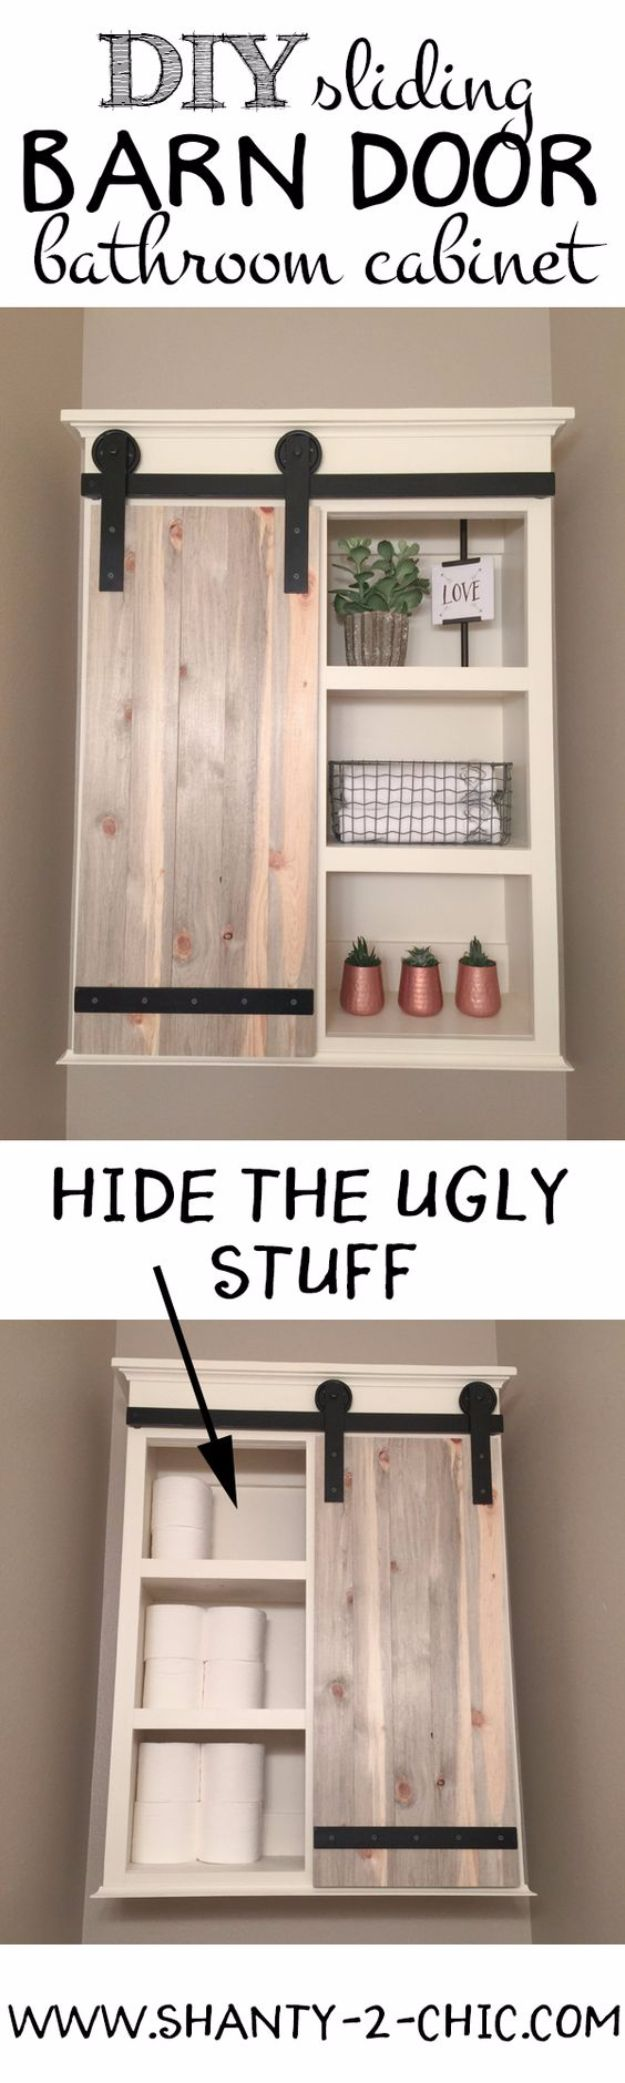 DIY Bathroom Storage Ideas - DIY Sliding Barn Door Bathroom Cabinet - Best Solutions for Under Sink Organization, Countertop Jars and Boxes, Counter Caddy With Mason Jars, Over Toilet Ideas and Shelves, Easy Tips and Tricks for Small Spaces To Organize Bath Products http://diyjoy.com/diy-bathroom-storage-ideas